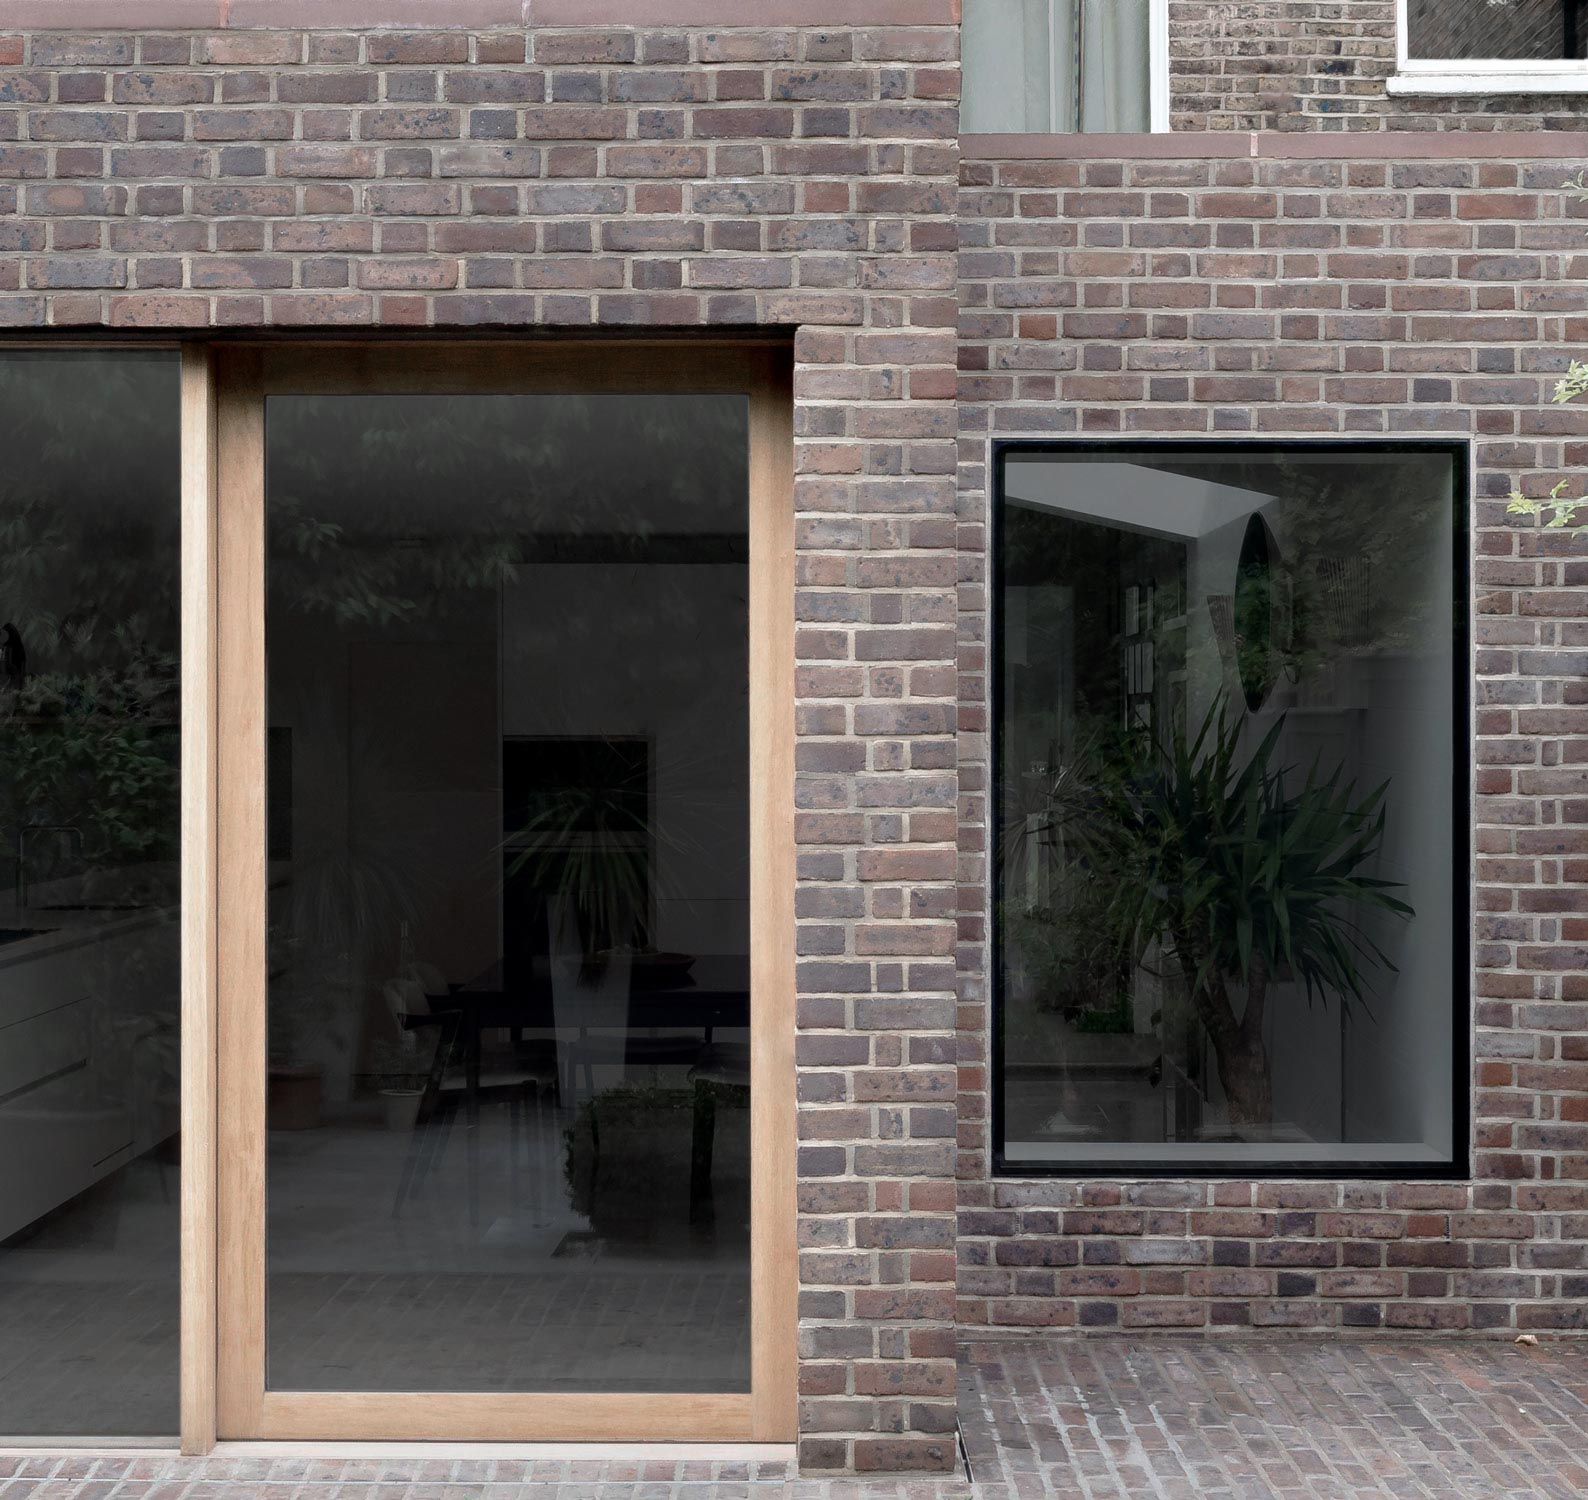 Kensington architect extension5